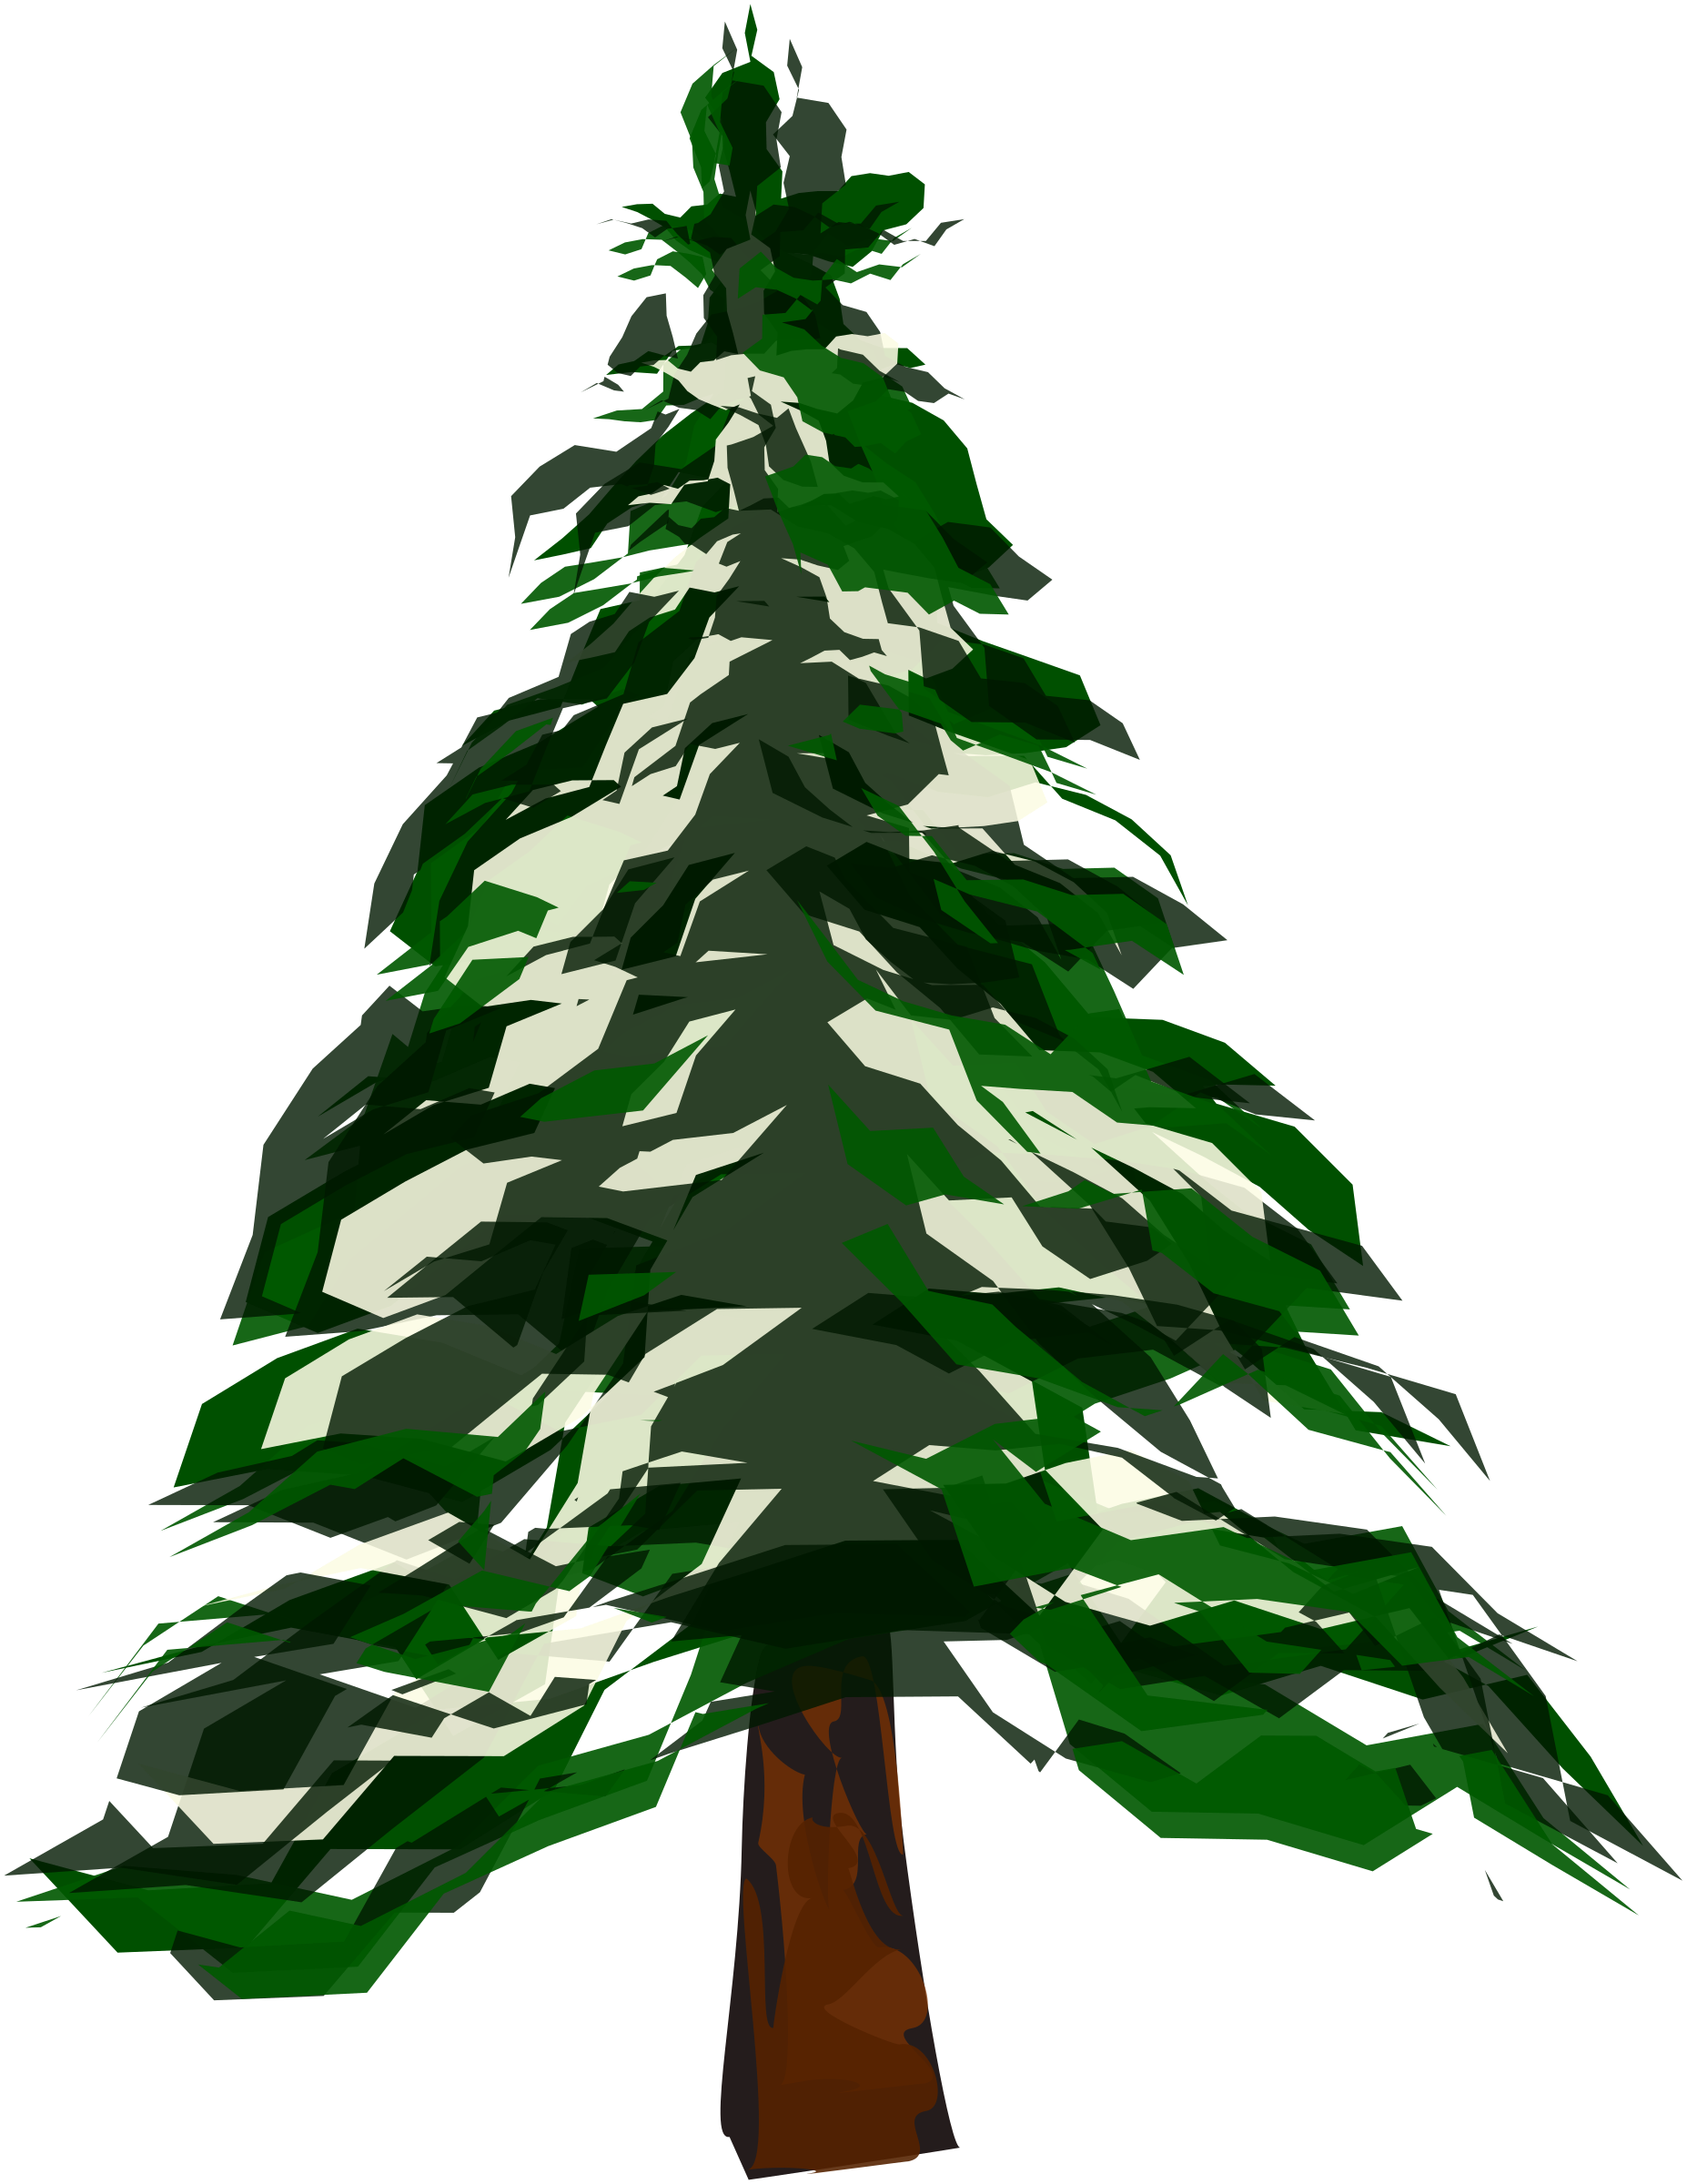 Clipart - Winter Tree 1 graphic royalty free